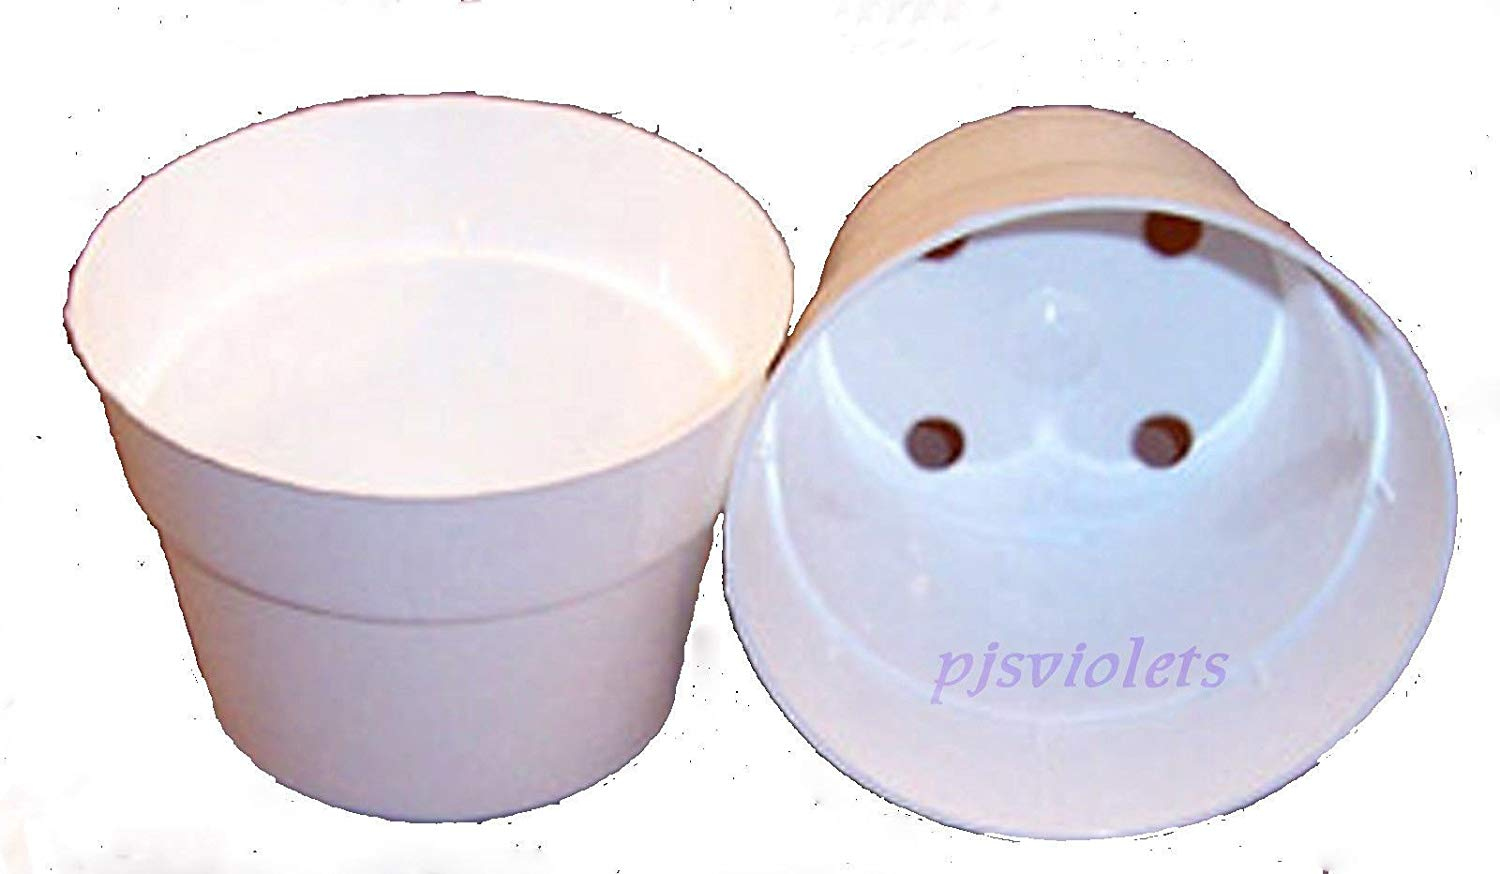 Get Quotations · 50 - 4 inch White Plastic Flower Pots Made in the USA  sc 1 st  Alibaba & Cheap 3 Inch Plastic Flower Pots find 3 Inch Plastic Flower Pots ...